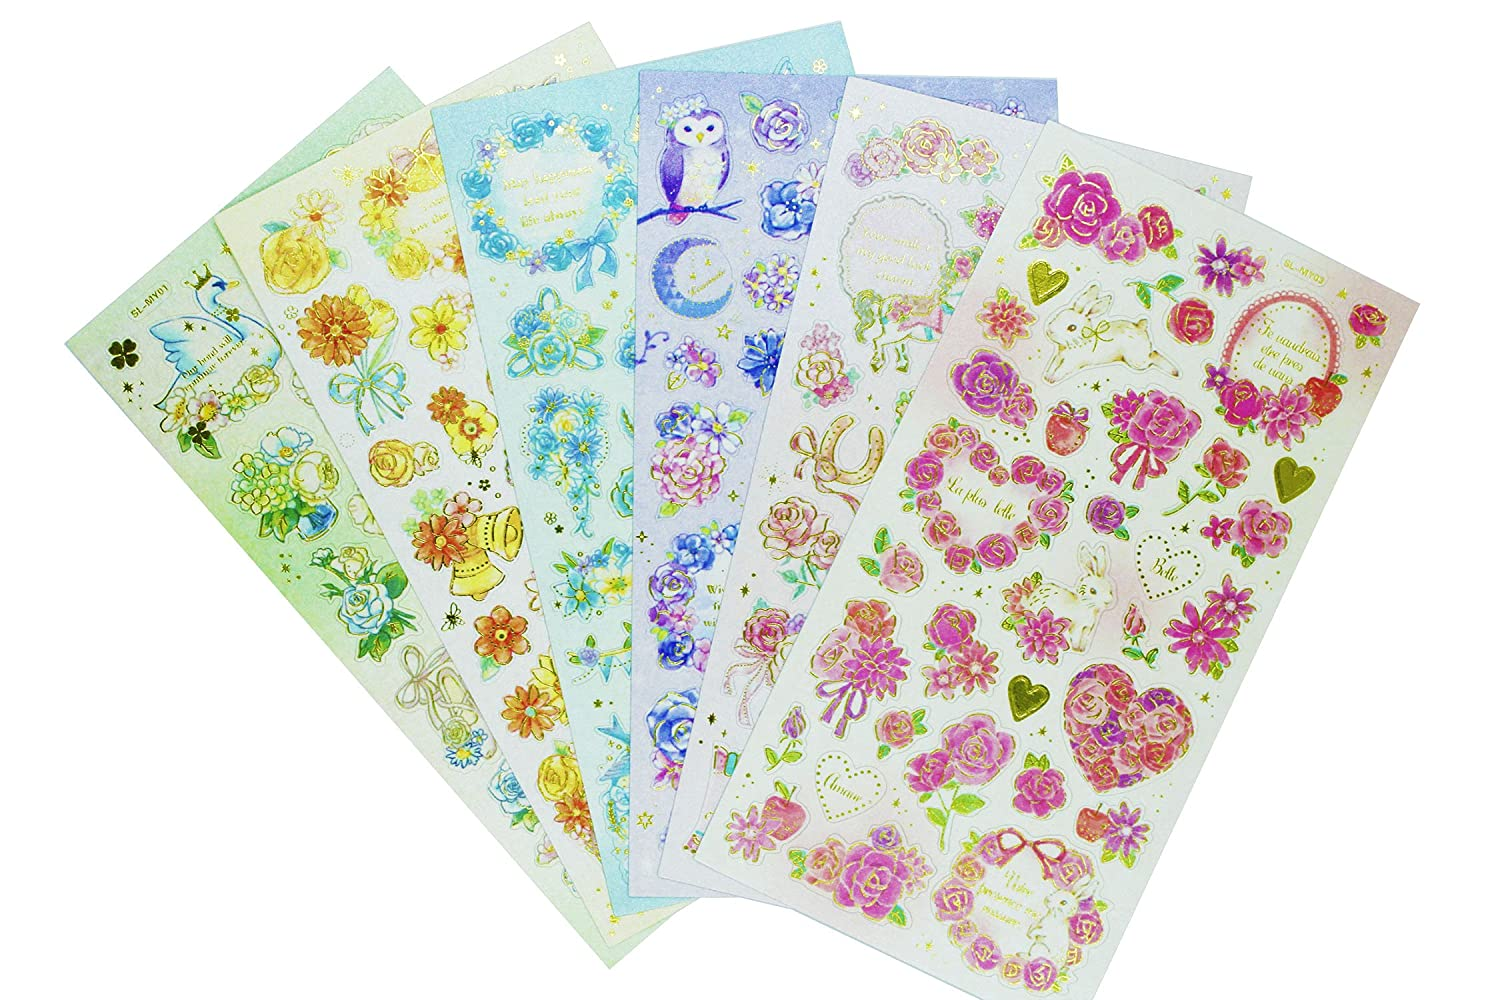 Flower Stickers 6 Sheets with Roses, Daisy, Chrysanthemum Self Stick Labels for Scarpbooking Crafts - 160 Pieces HighMount